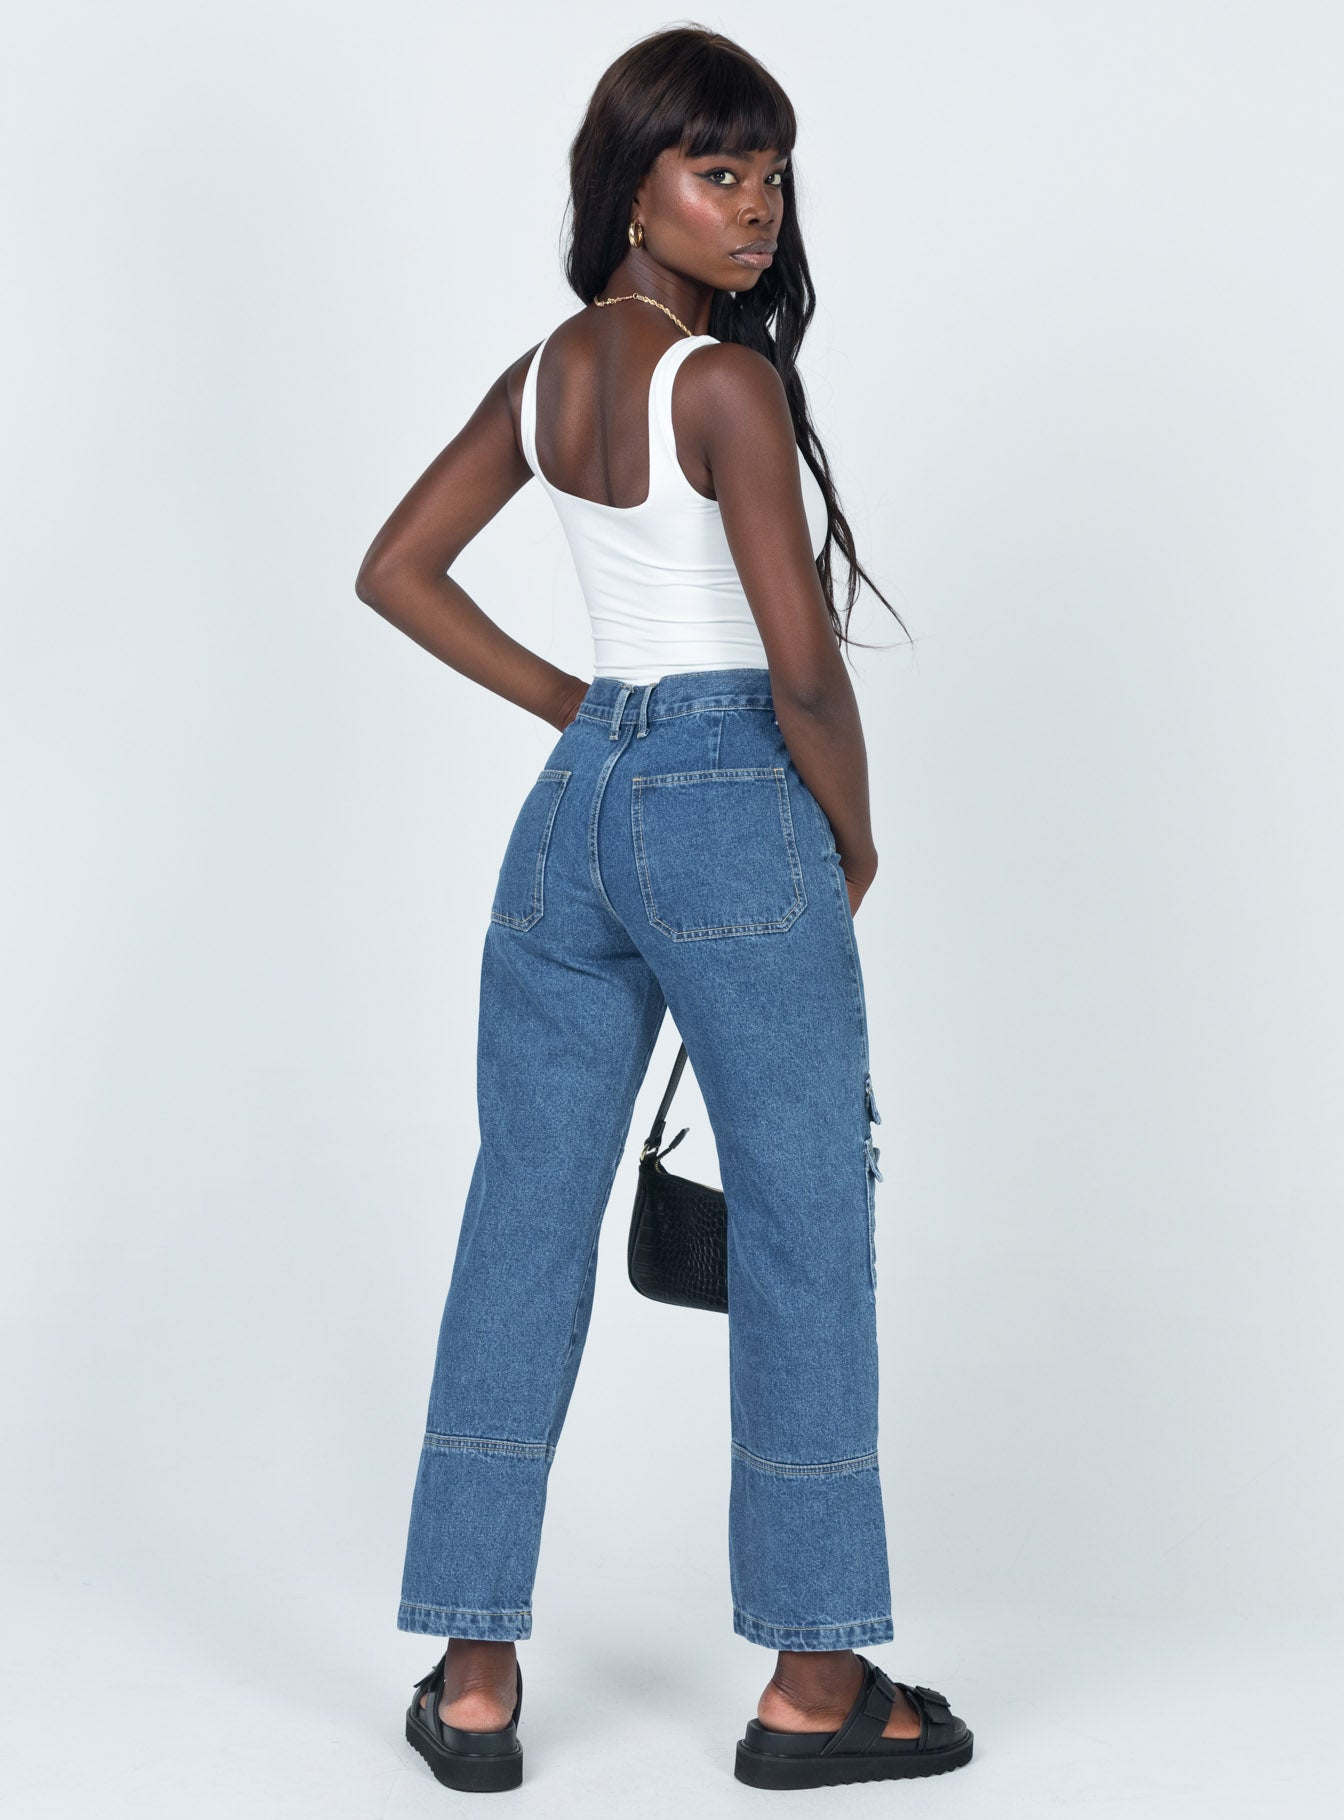 The Stacey Jean Dark Wash Denim